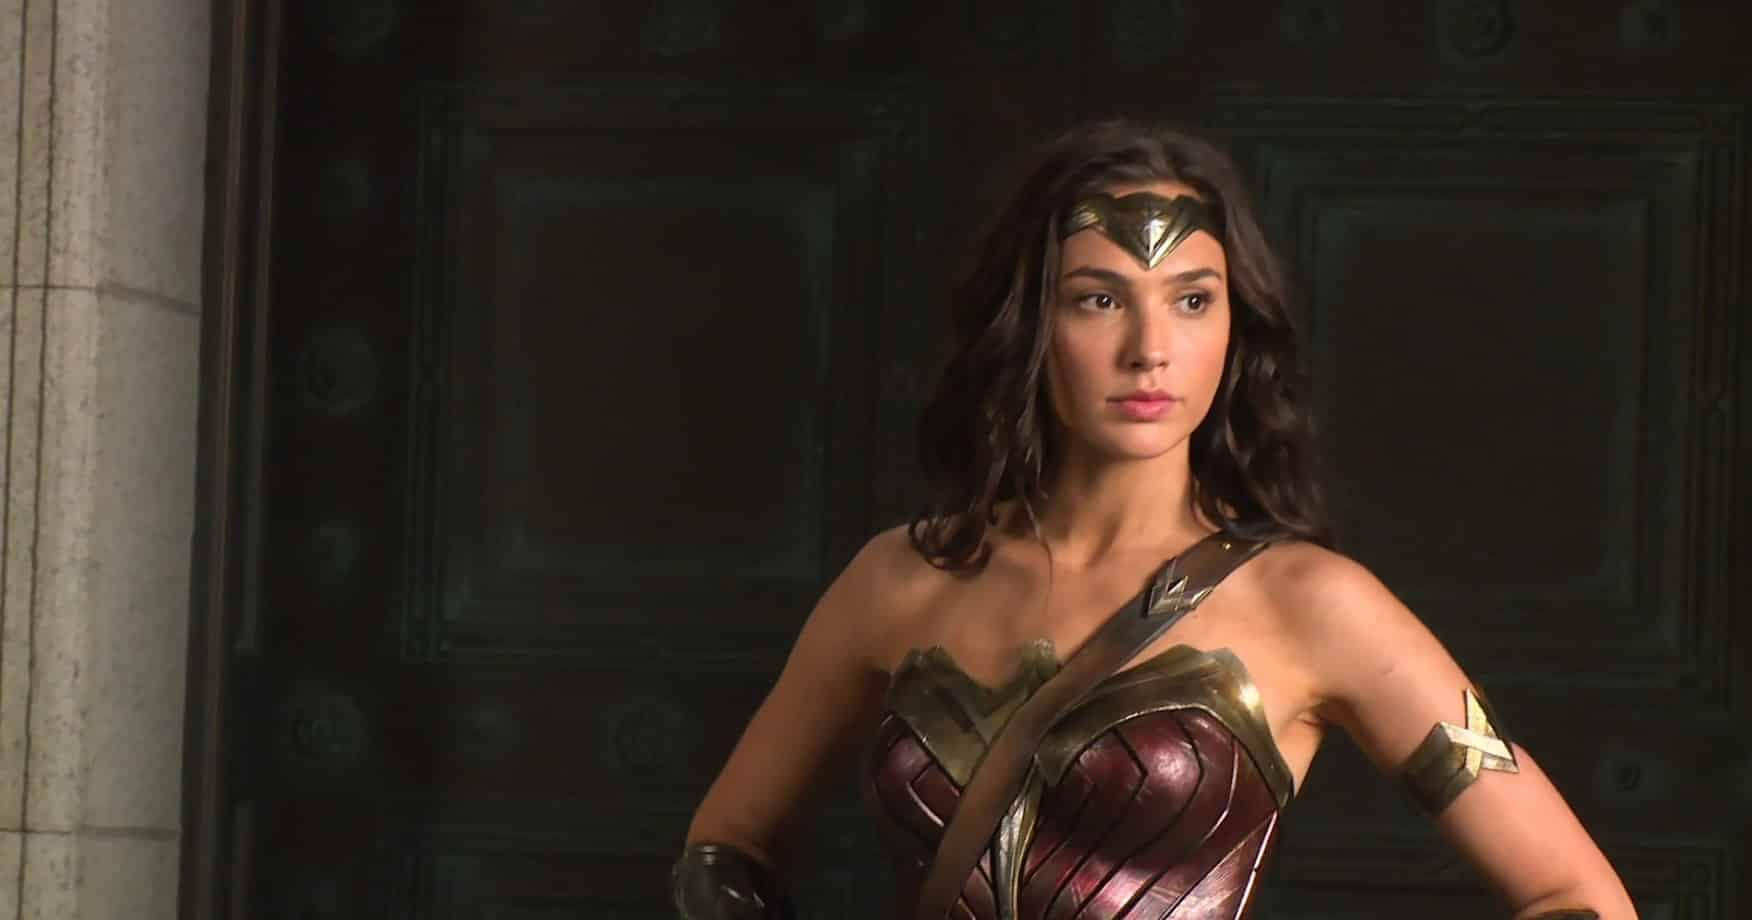 WONDER WOMAN Reportedly Heading Into Reshoots